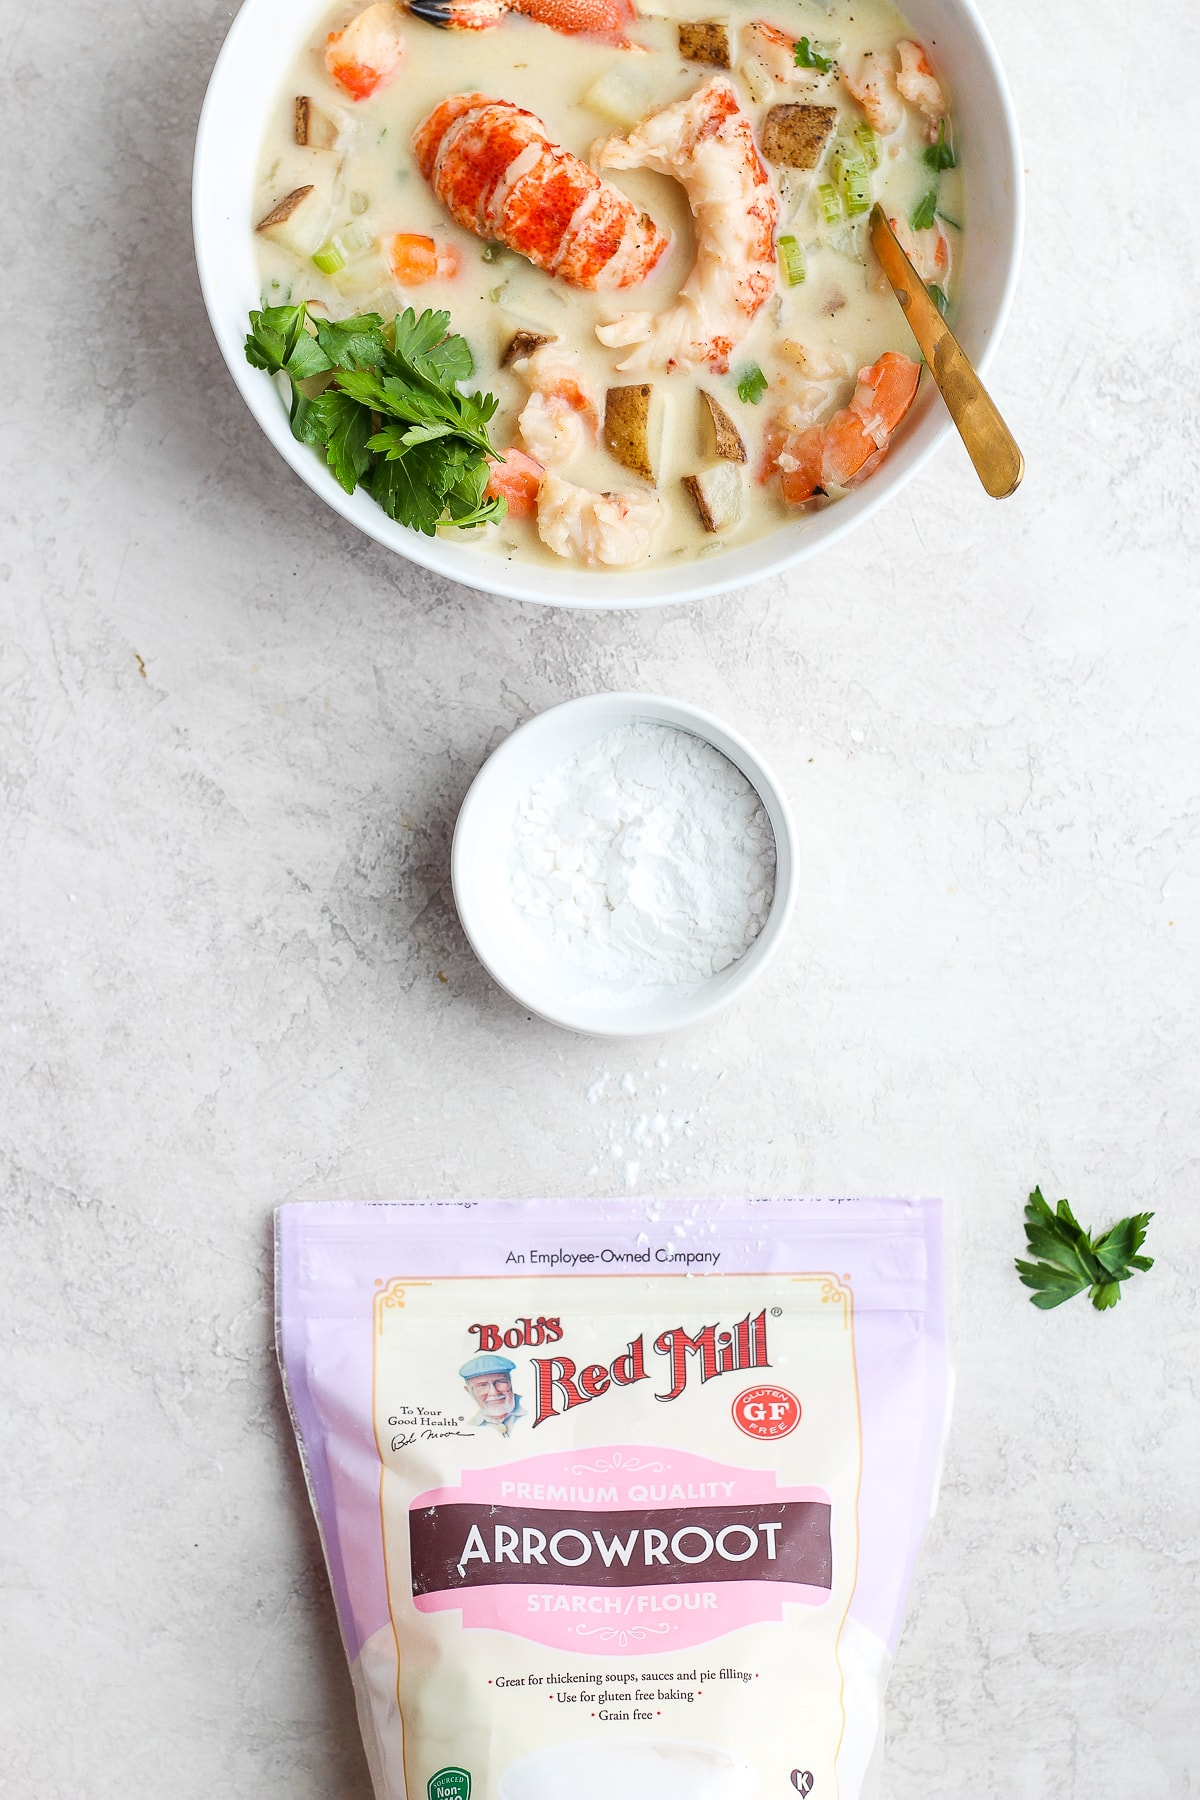 Ultimate Dairy-Free Chunky Seafood Chowder - a decadent and savory seafood chowder that is Whole30, dairy-free and paleo! #whole30recipes #healthyseafoodchowder #paleorecipes #healthysoup #dairyfreechowder #whole30dinner #valentinesday